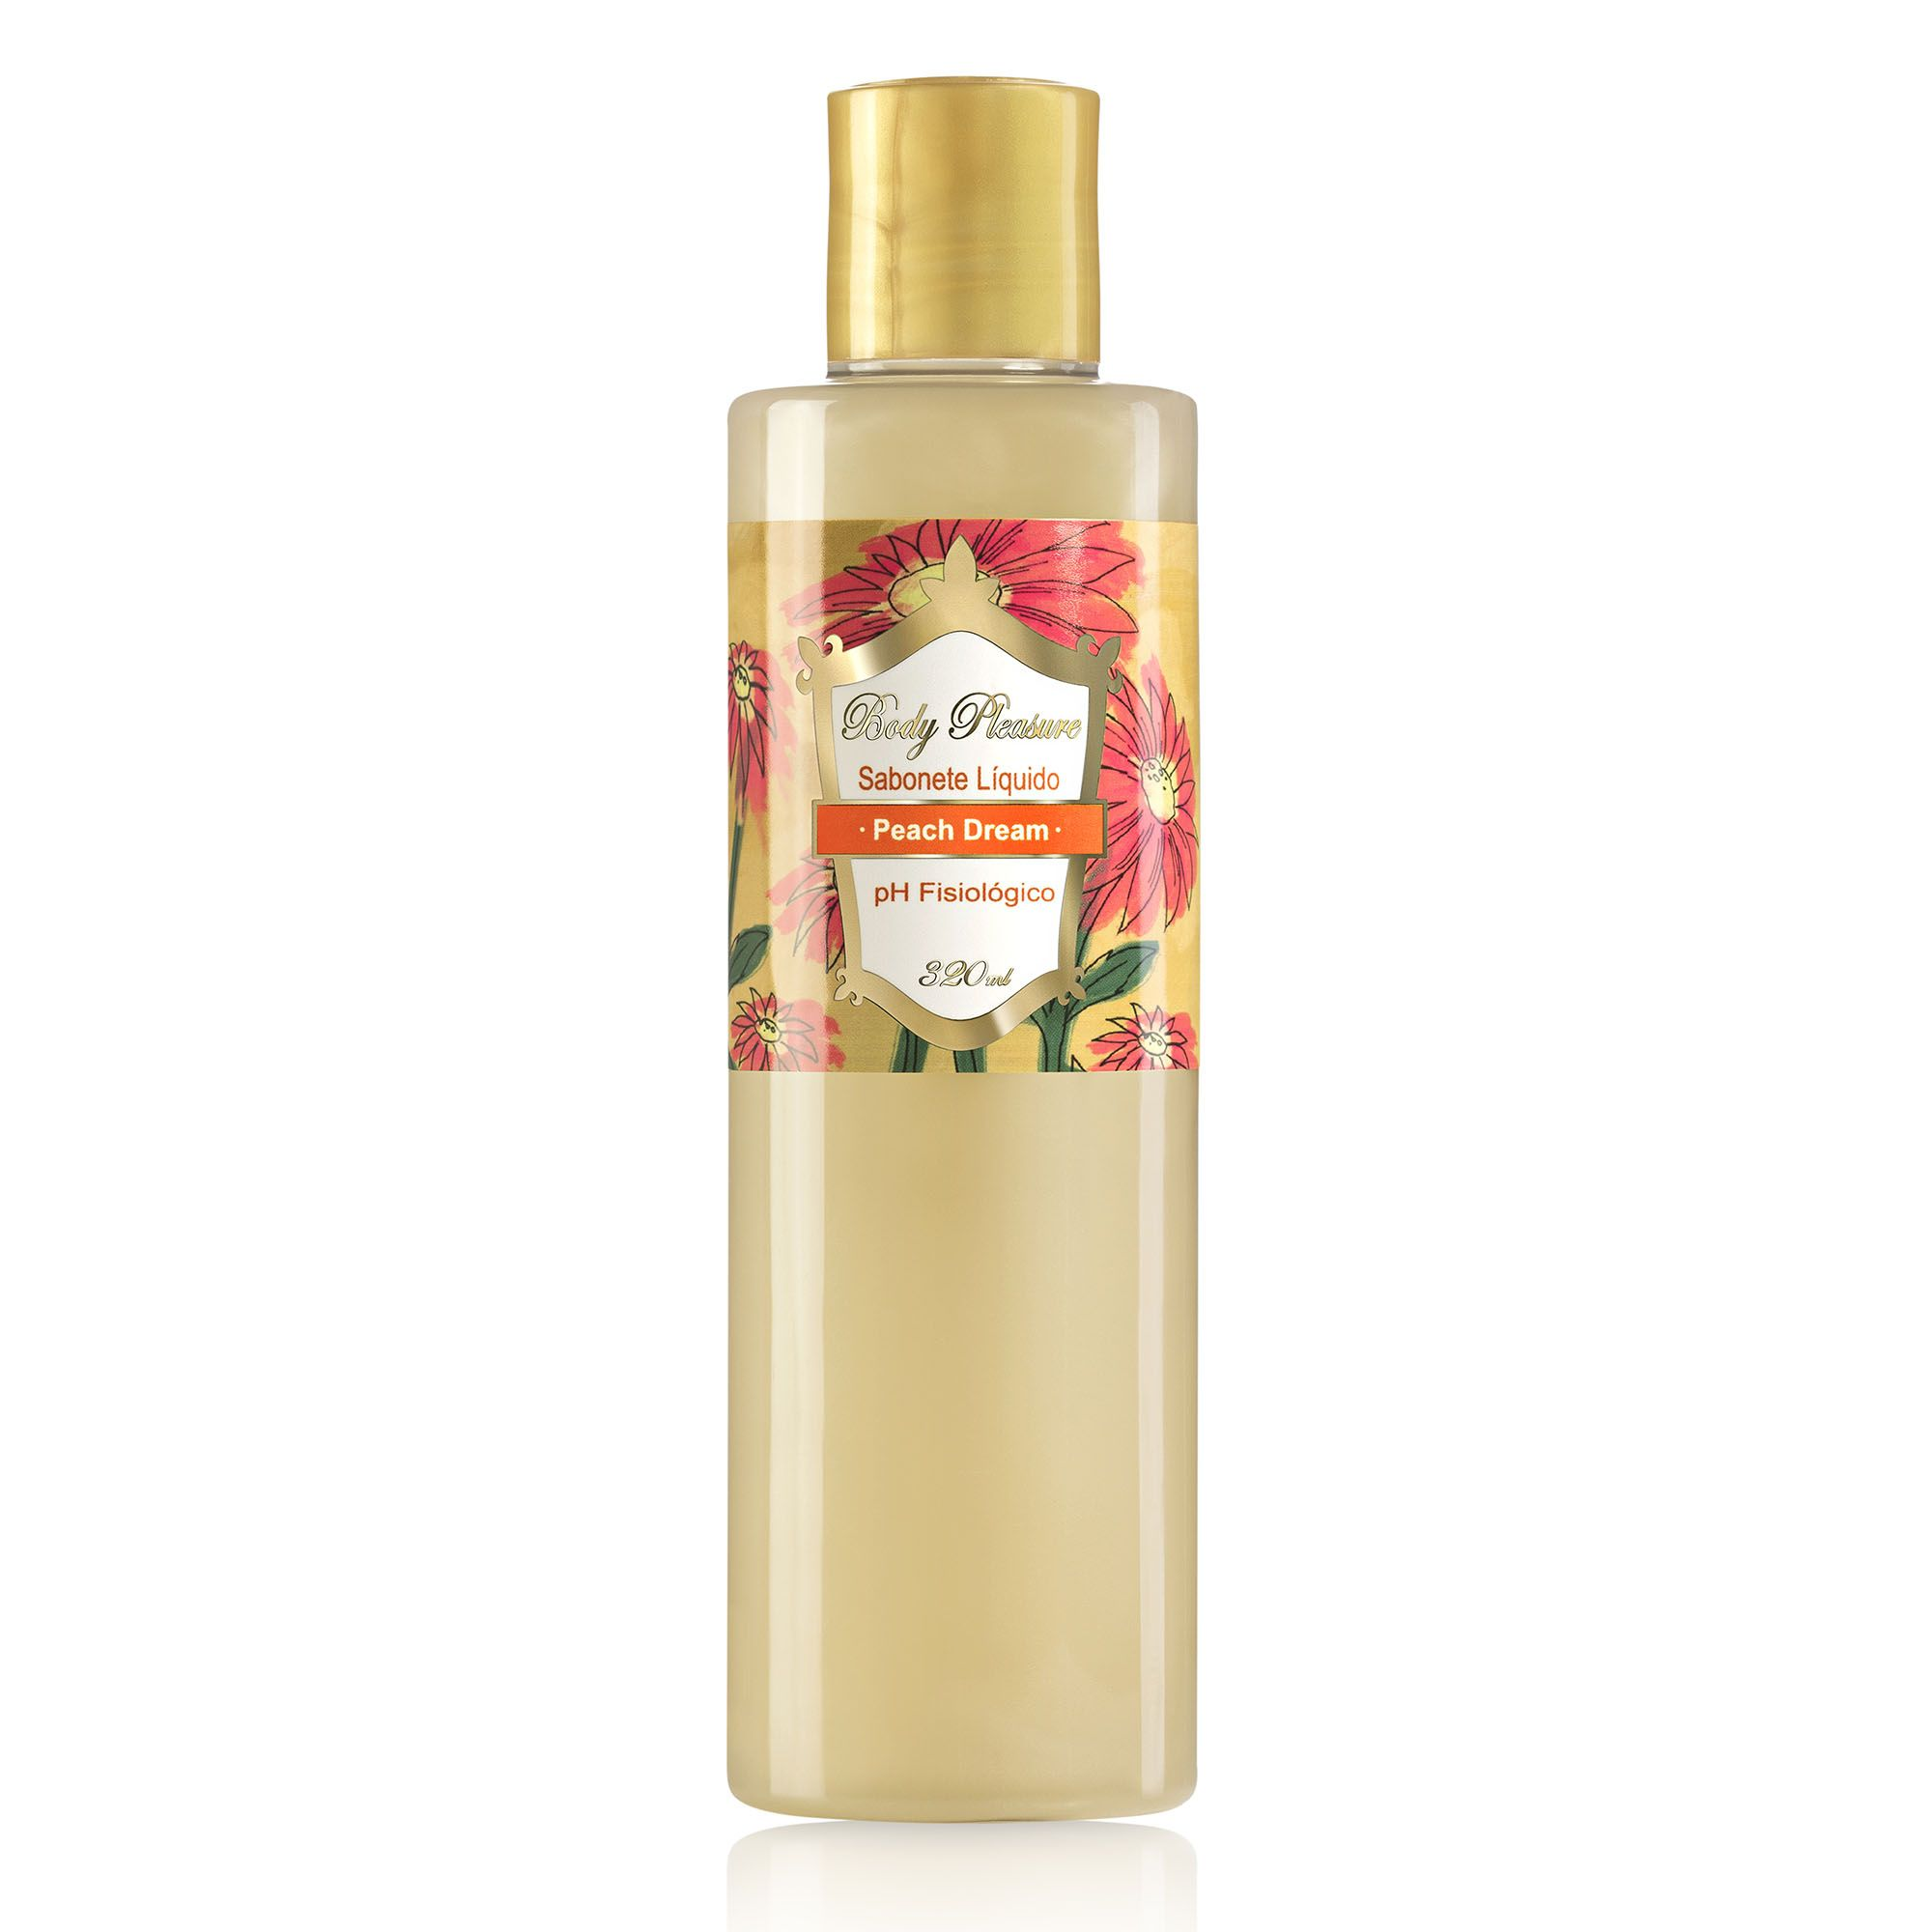 Sabonete Líquido Peach Dream 320ml